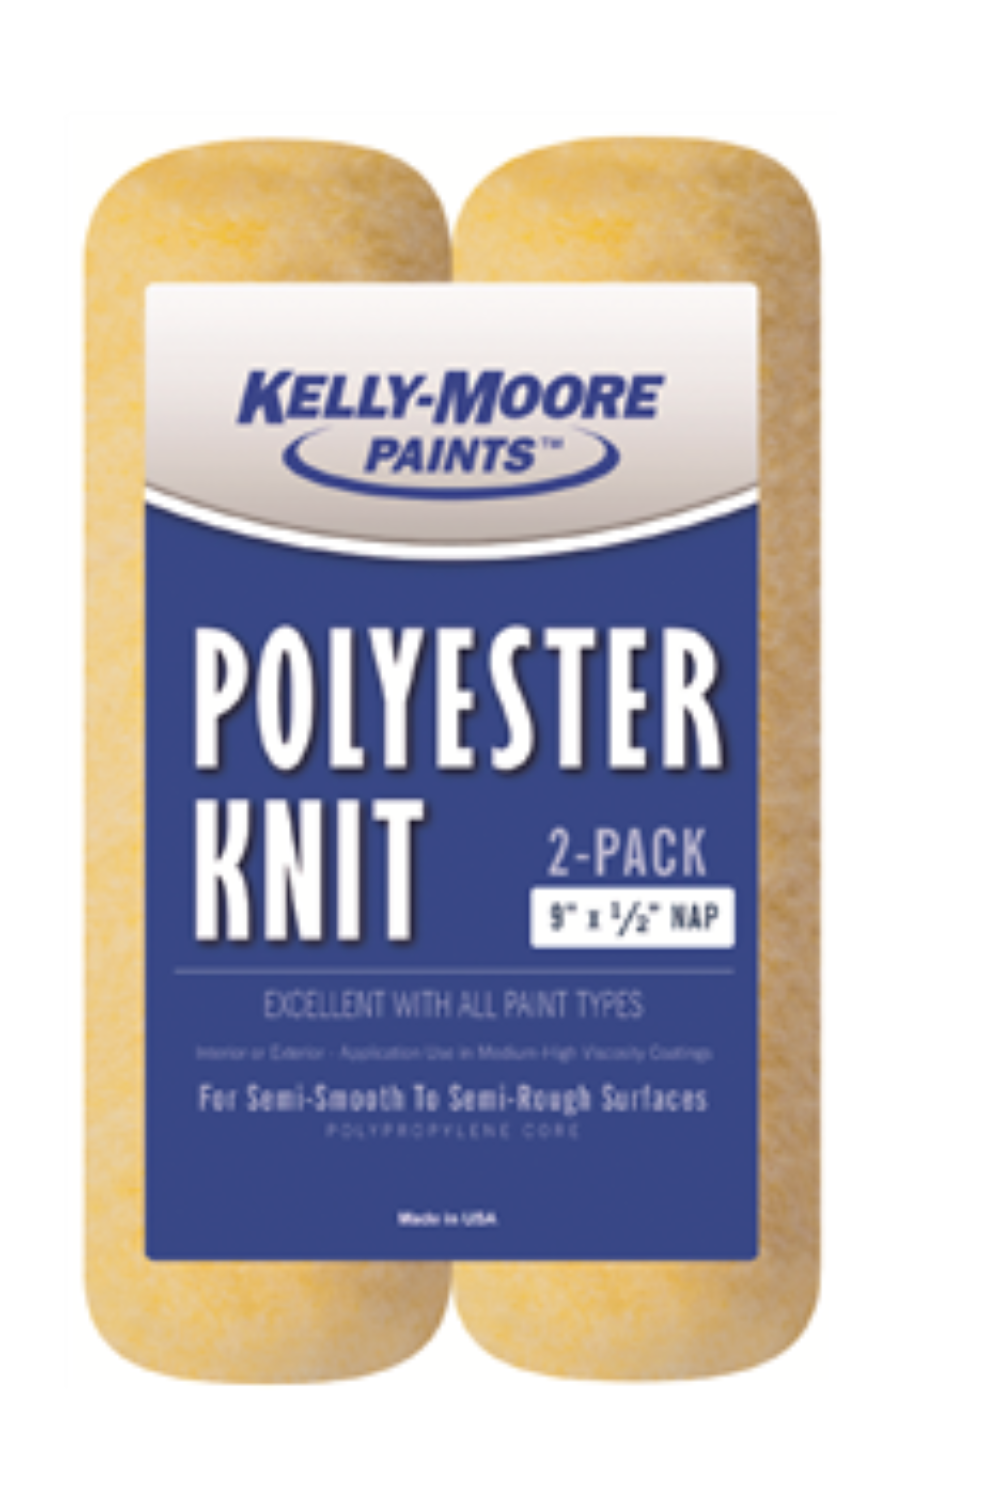 "9"" x 1/2"" Nap Polyester Blend Knit Roller Cover 2 Pack, available at Kelly-Moore Paints for Contractors."